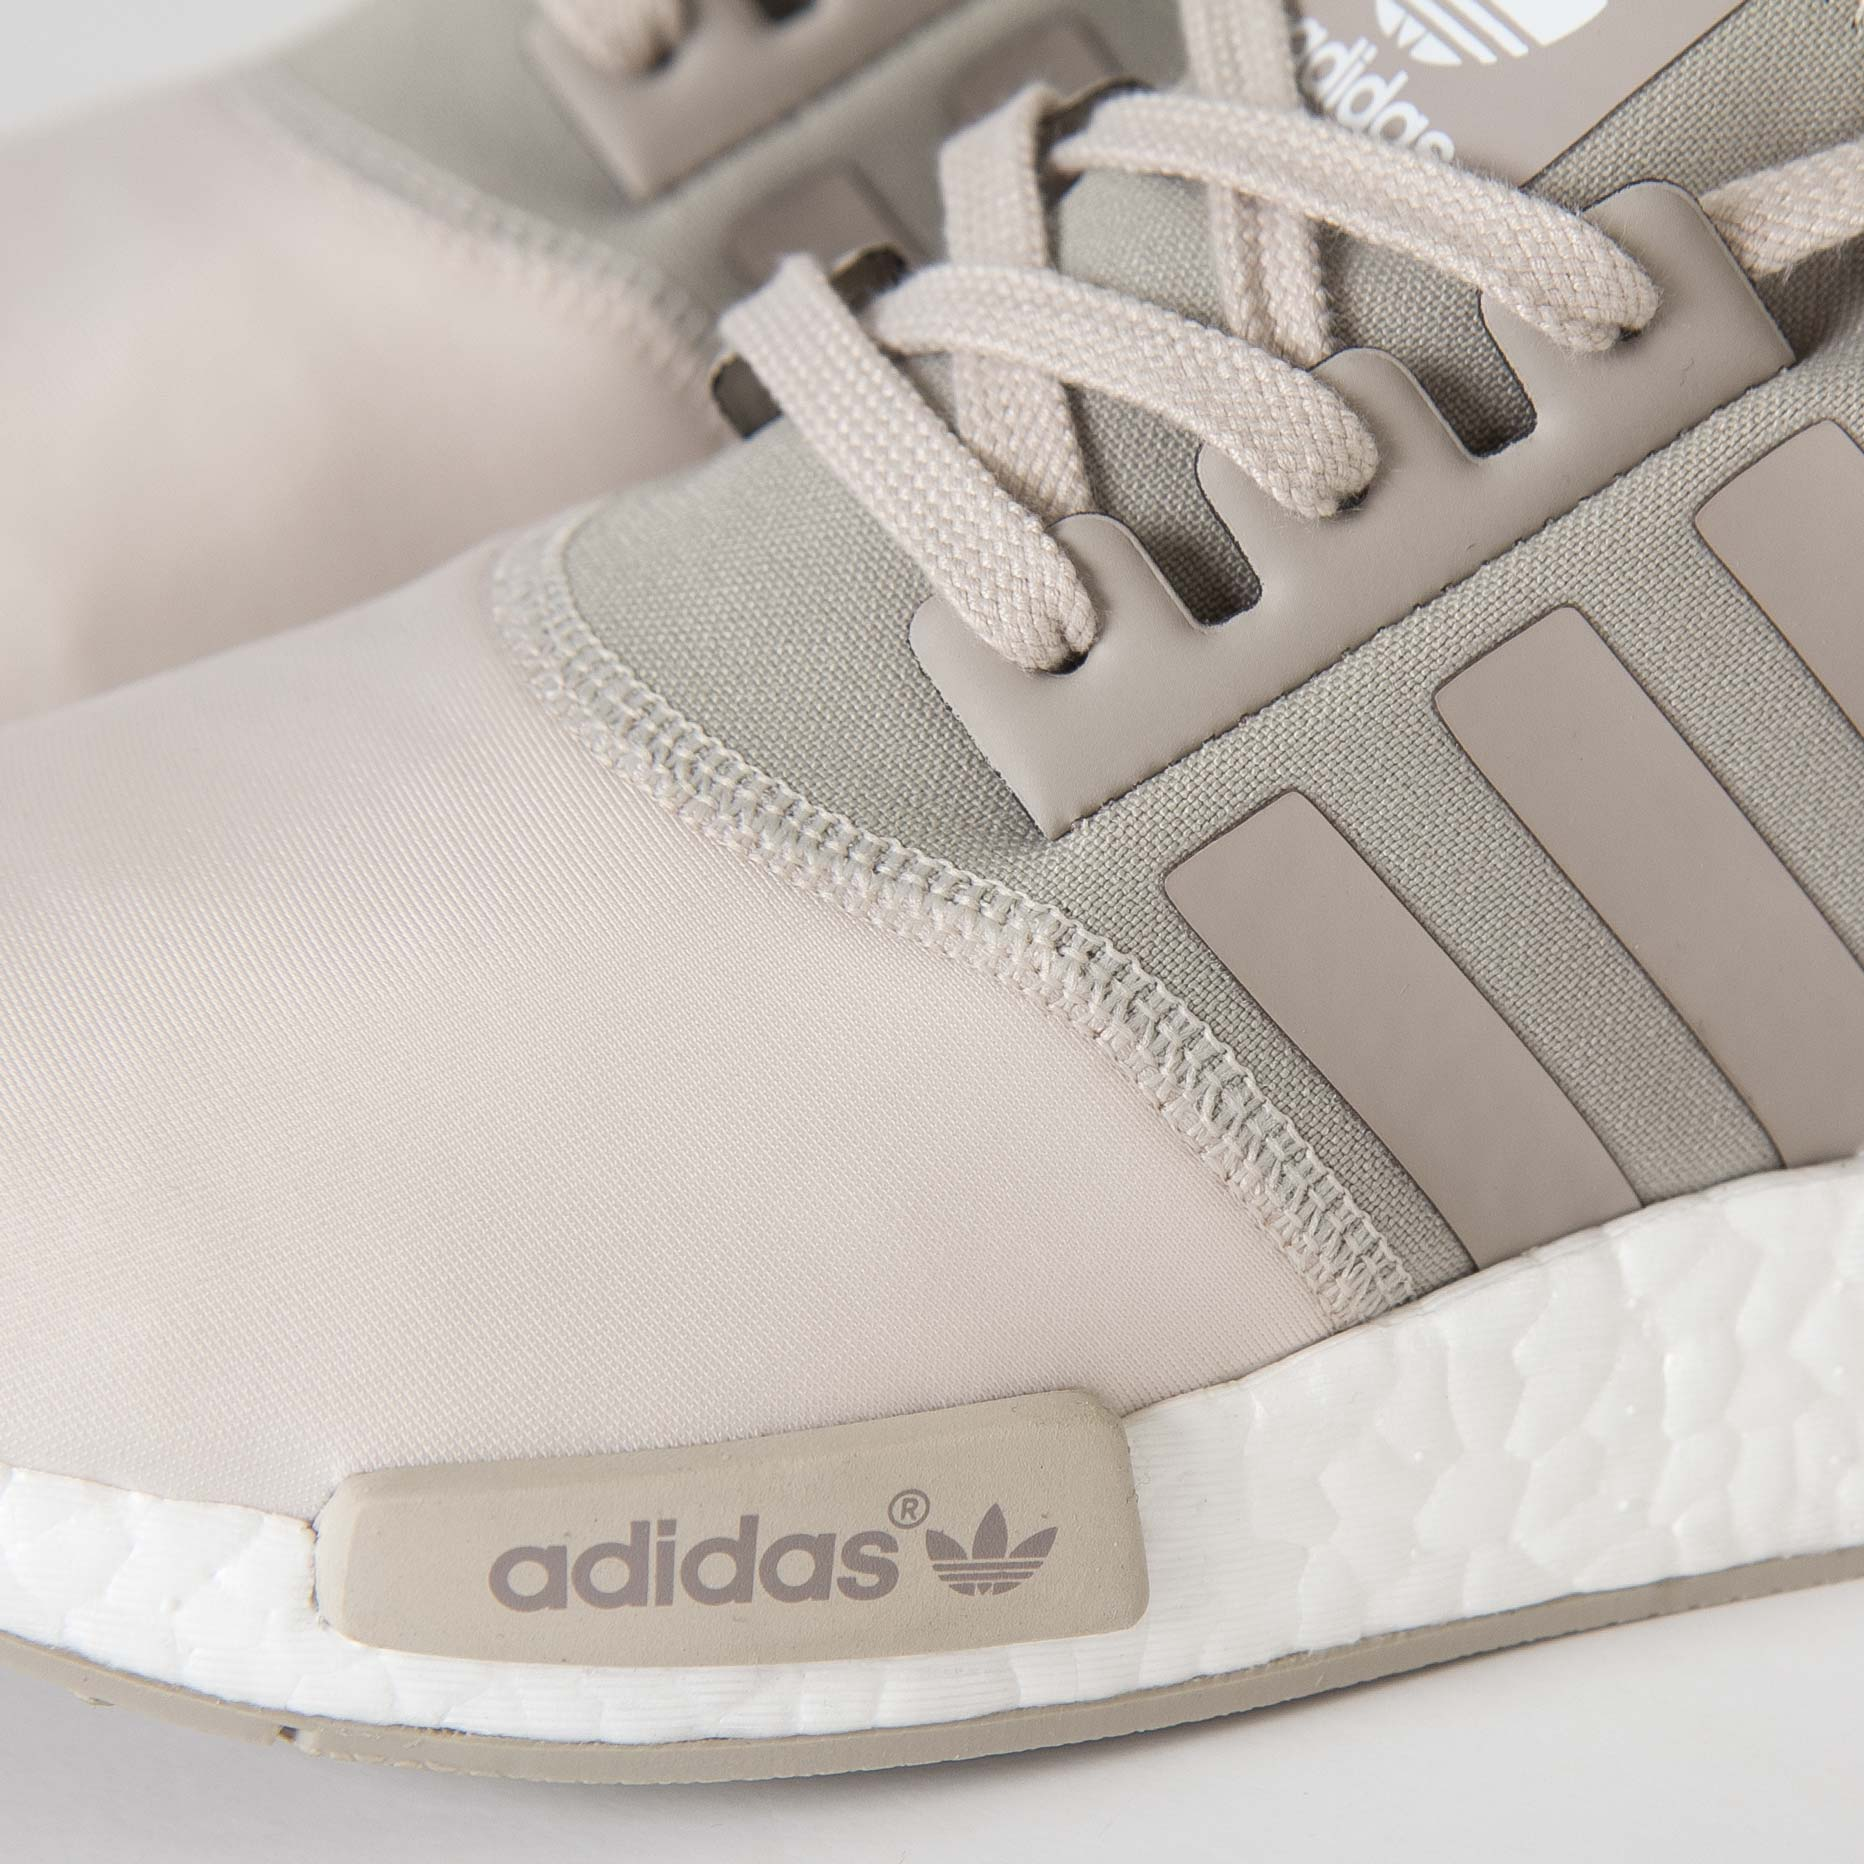 988ace2d8c50c adidas NMD R1 W - S75233 - Sneakersnstuff